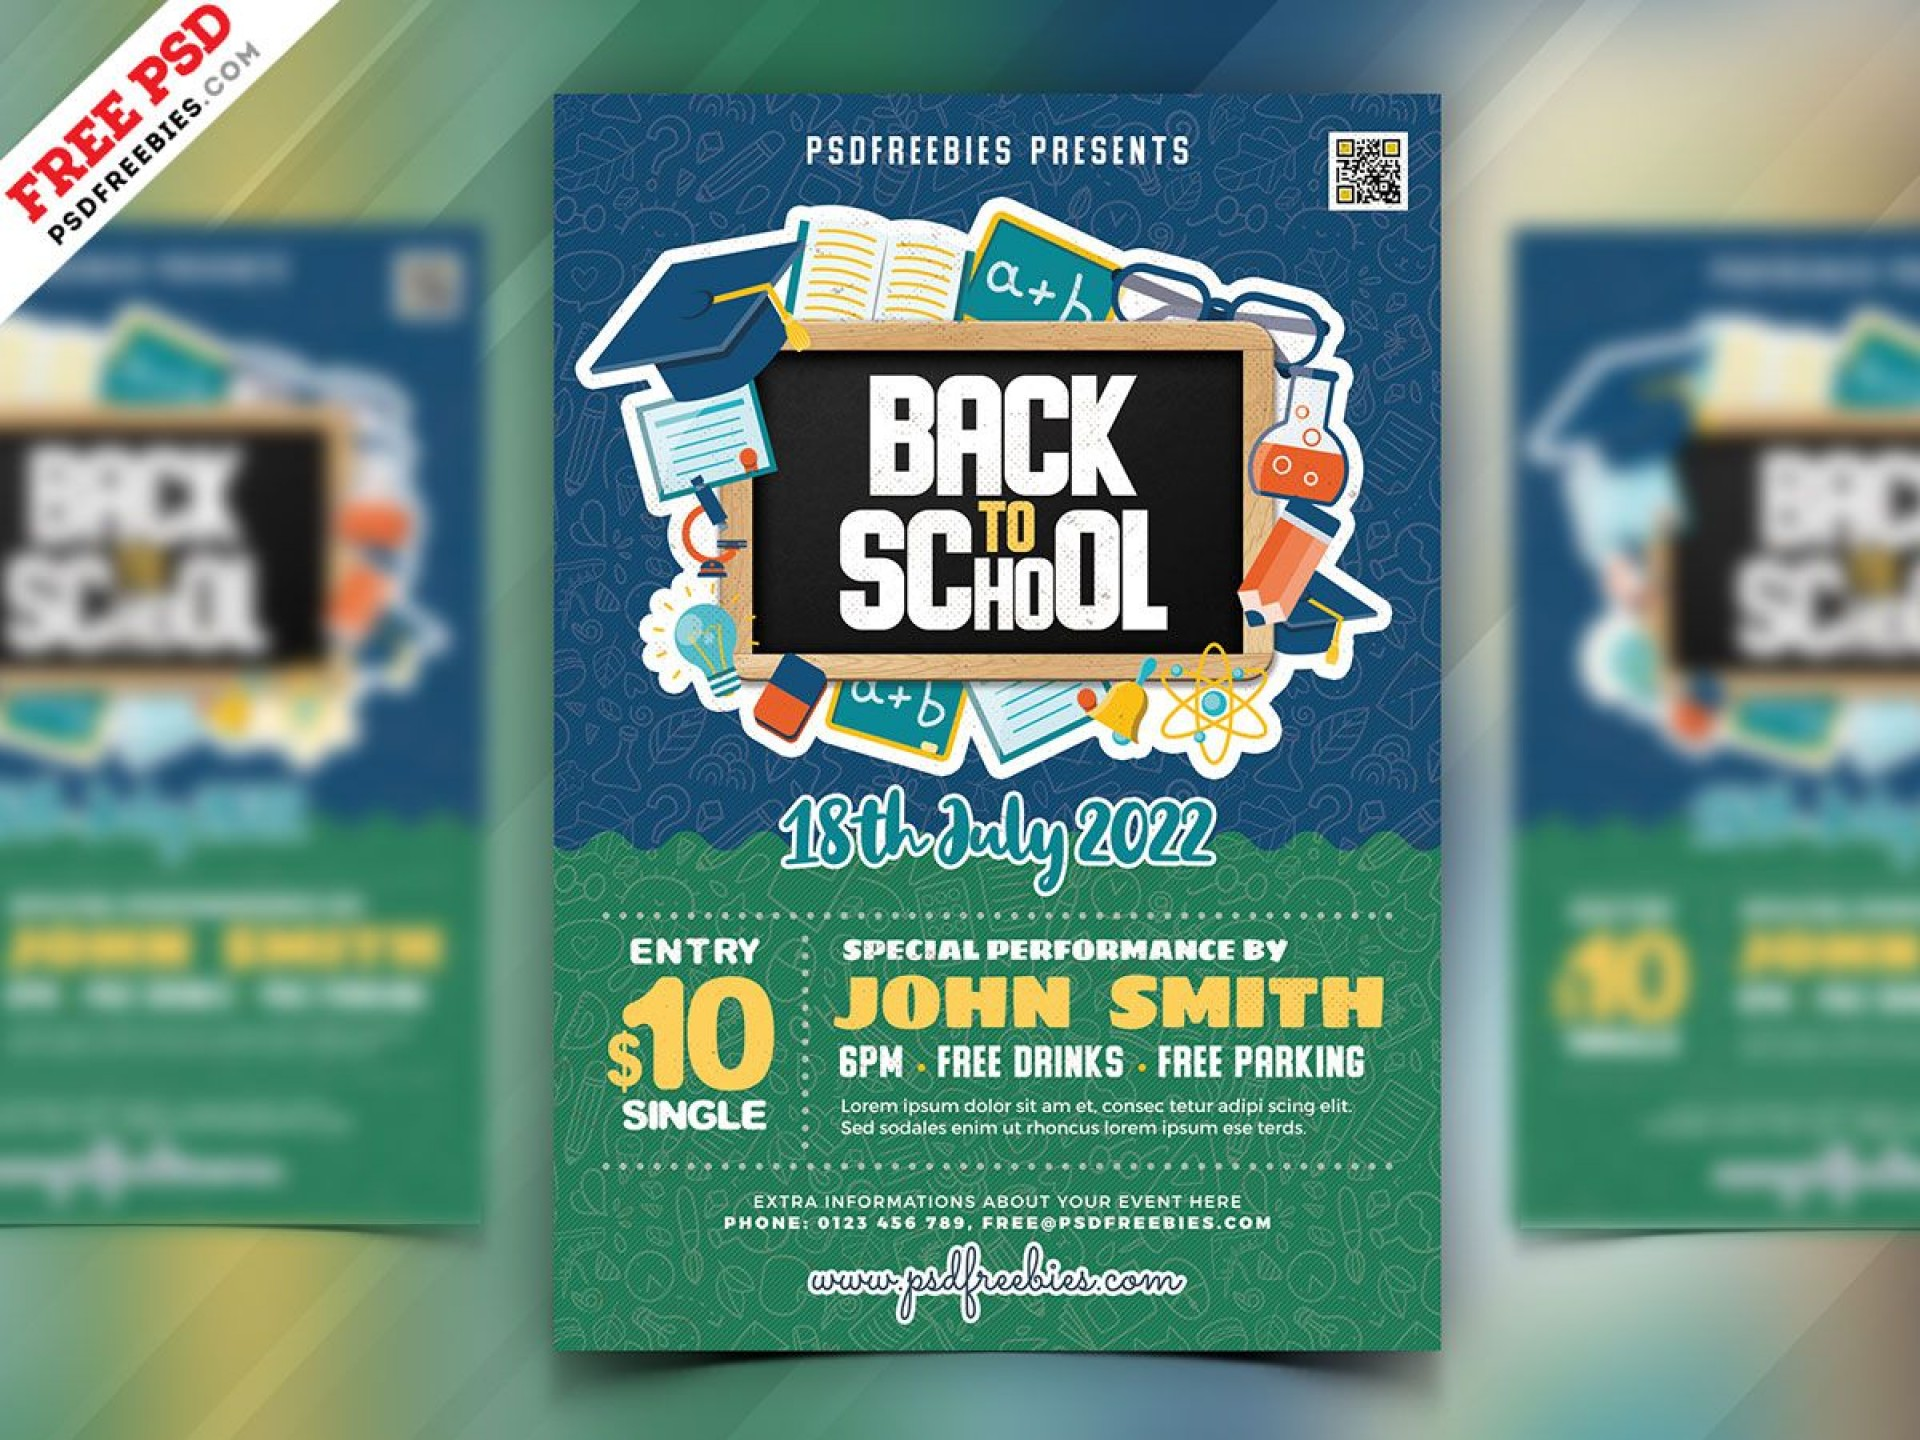 004 Fascinating Free Back To School Flyer Template Psd Highest Quality 1920